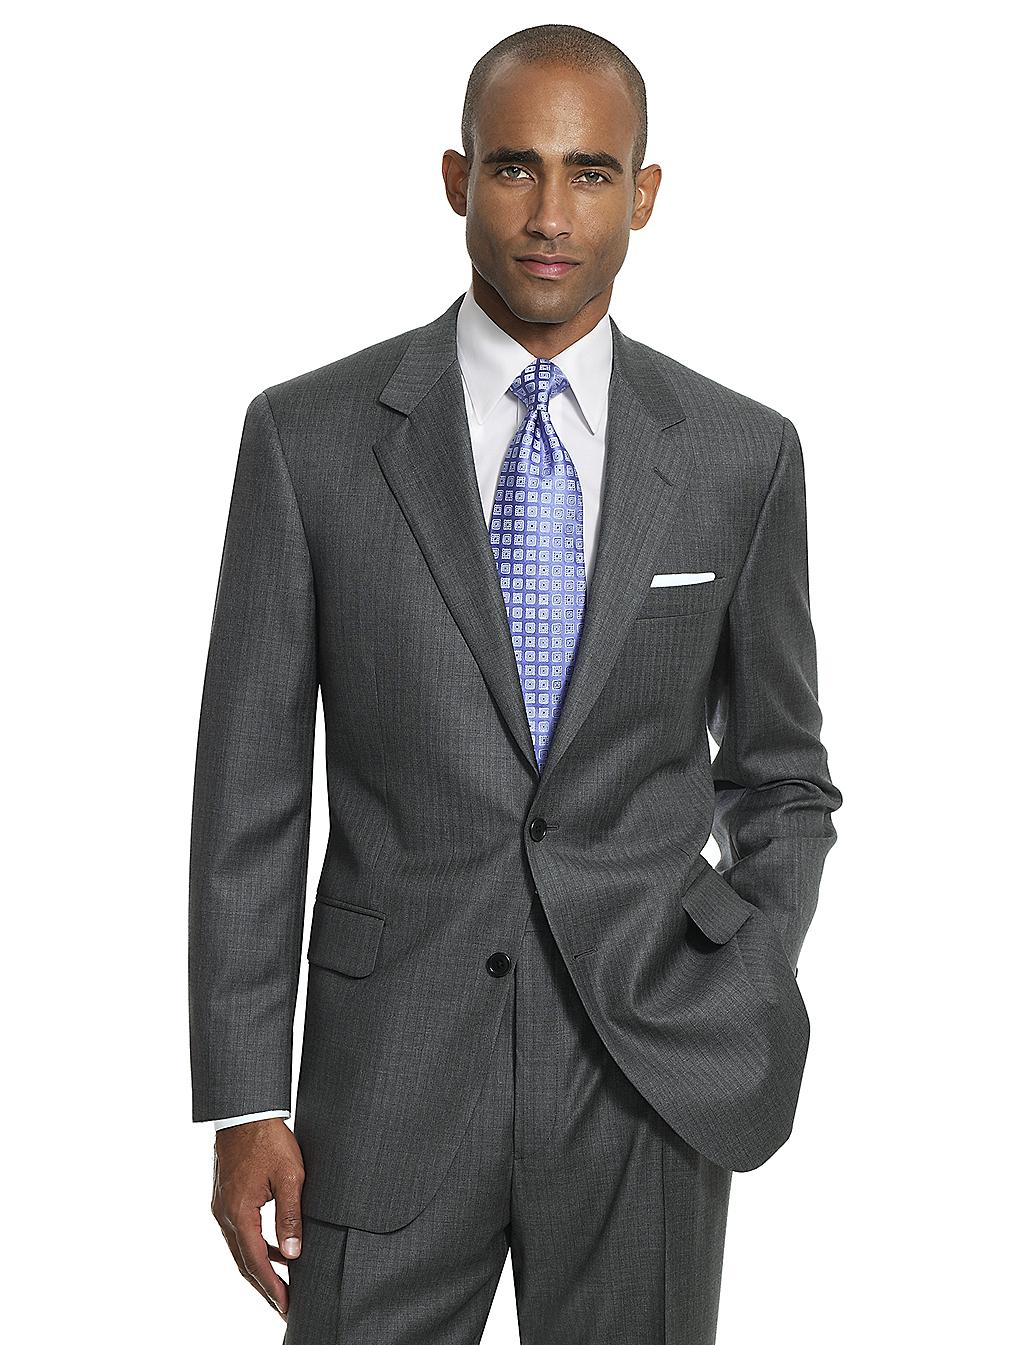 What is the quality of a Brooks Brothers 346 suit? - Quora